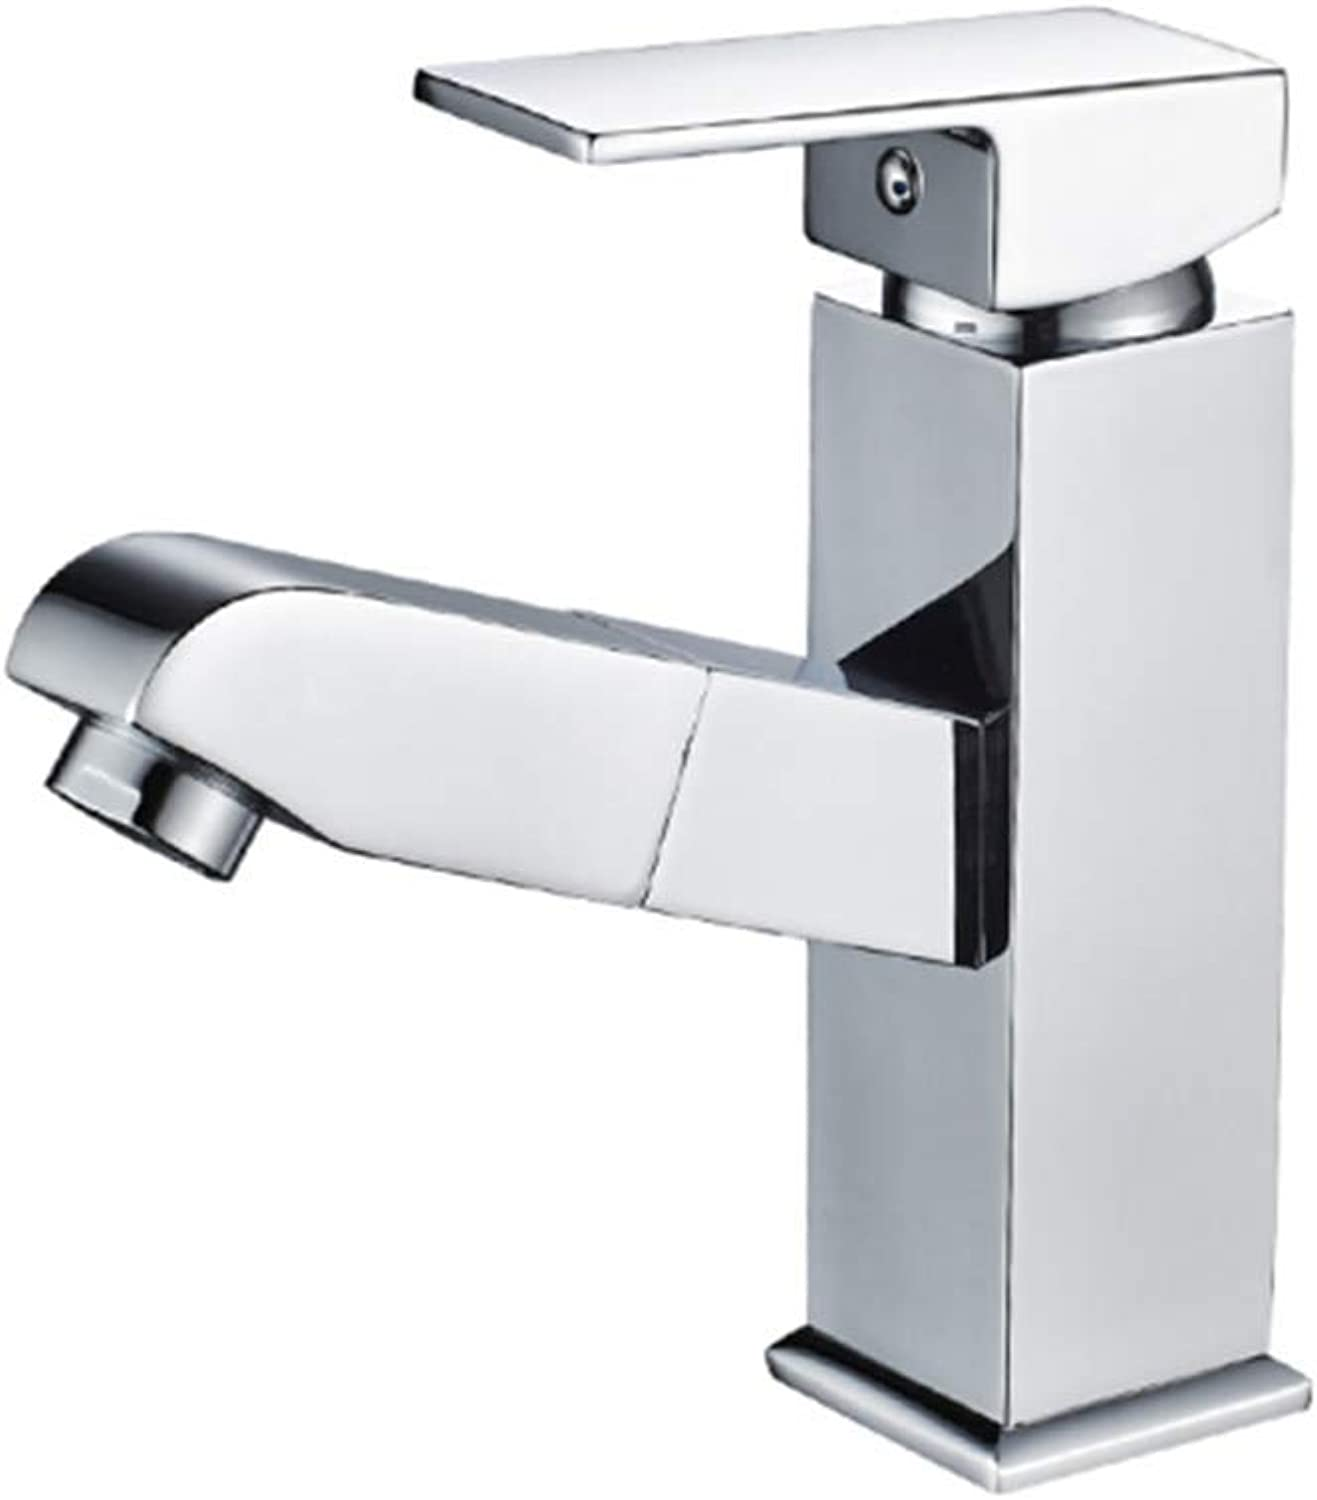 Kitchen Taps Faucet Modern Kitchen Sink Taps Stainless Steeltable Basin Pull Faucet Cold and Hot Retractable Toilet Toilet Basin Faucet Wash Basin Faucet Stretchable Wash